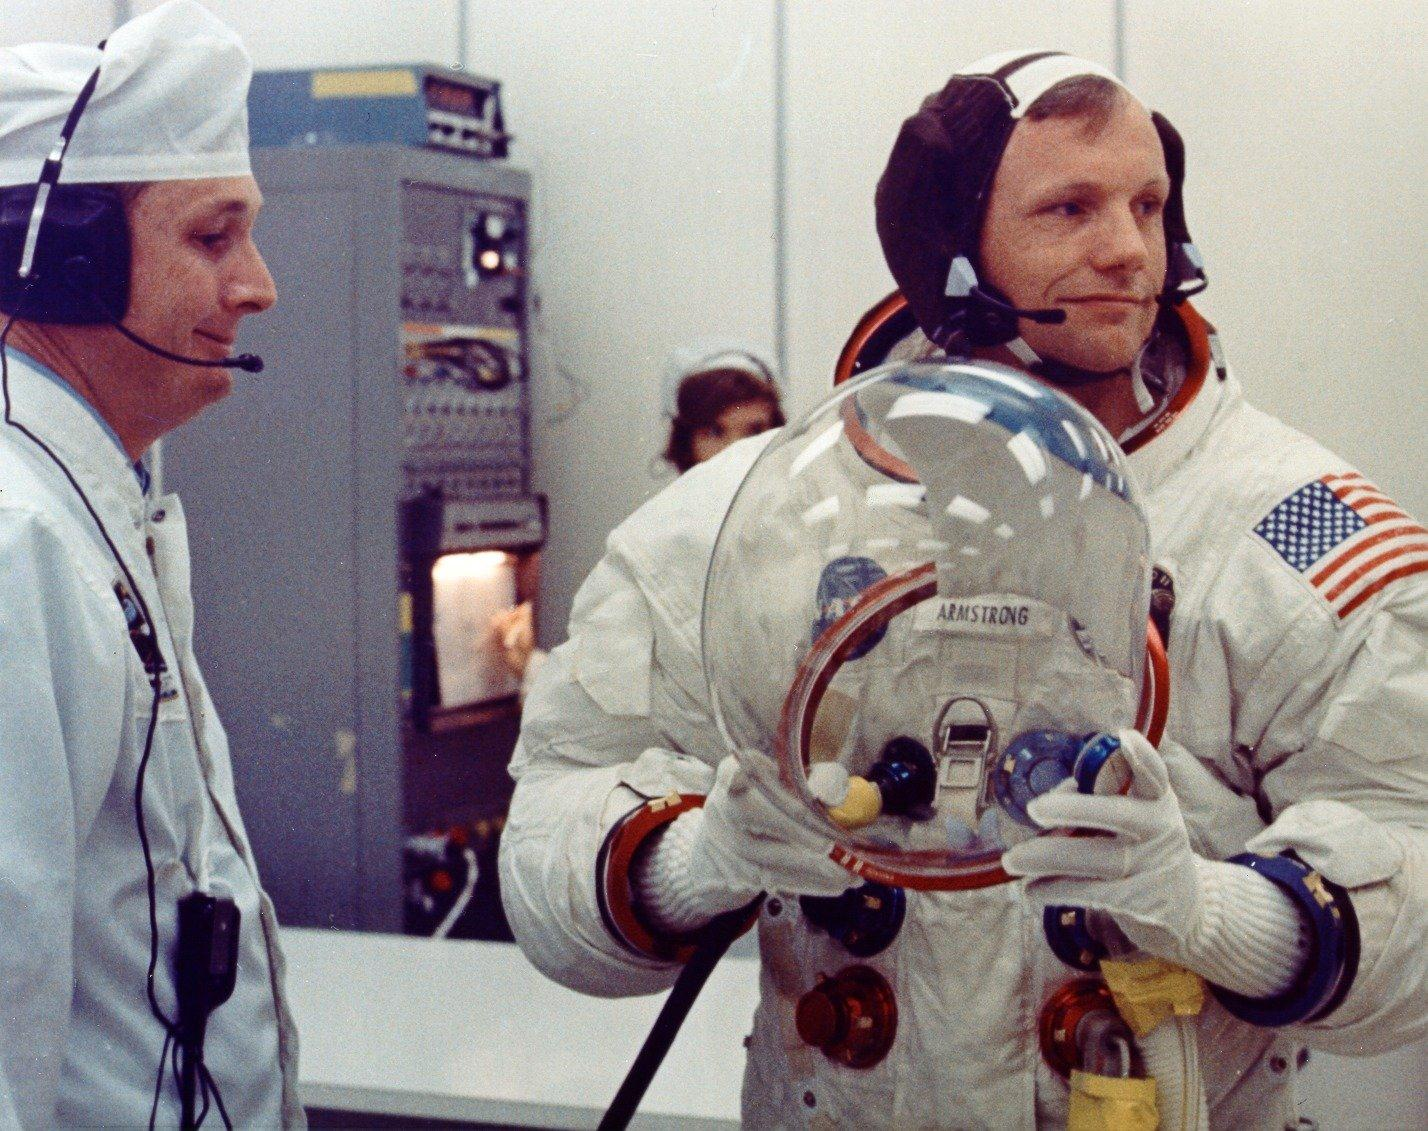 a biography of neil armstrong an astronaut Neil armstrong biography neil armstrong (1930 – 2012) was an american astronaut – who gained the distinction of being the first person to both land and walk on the moon.